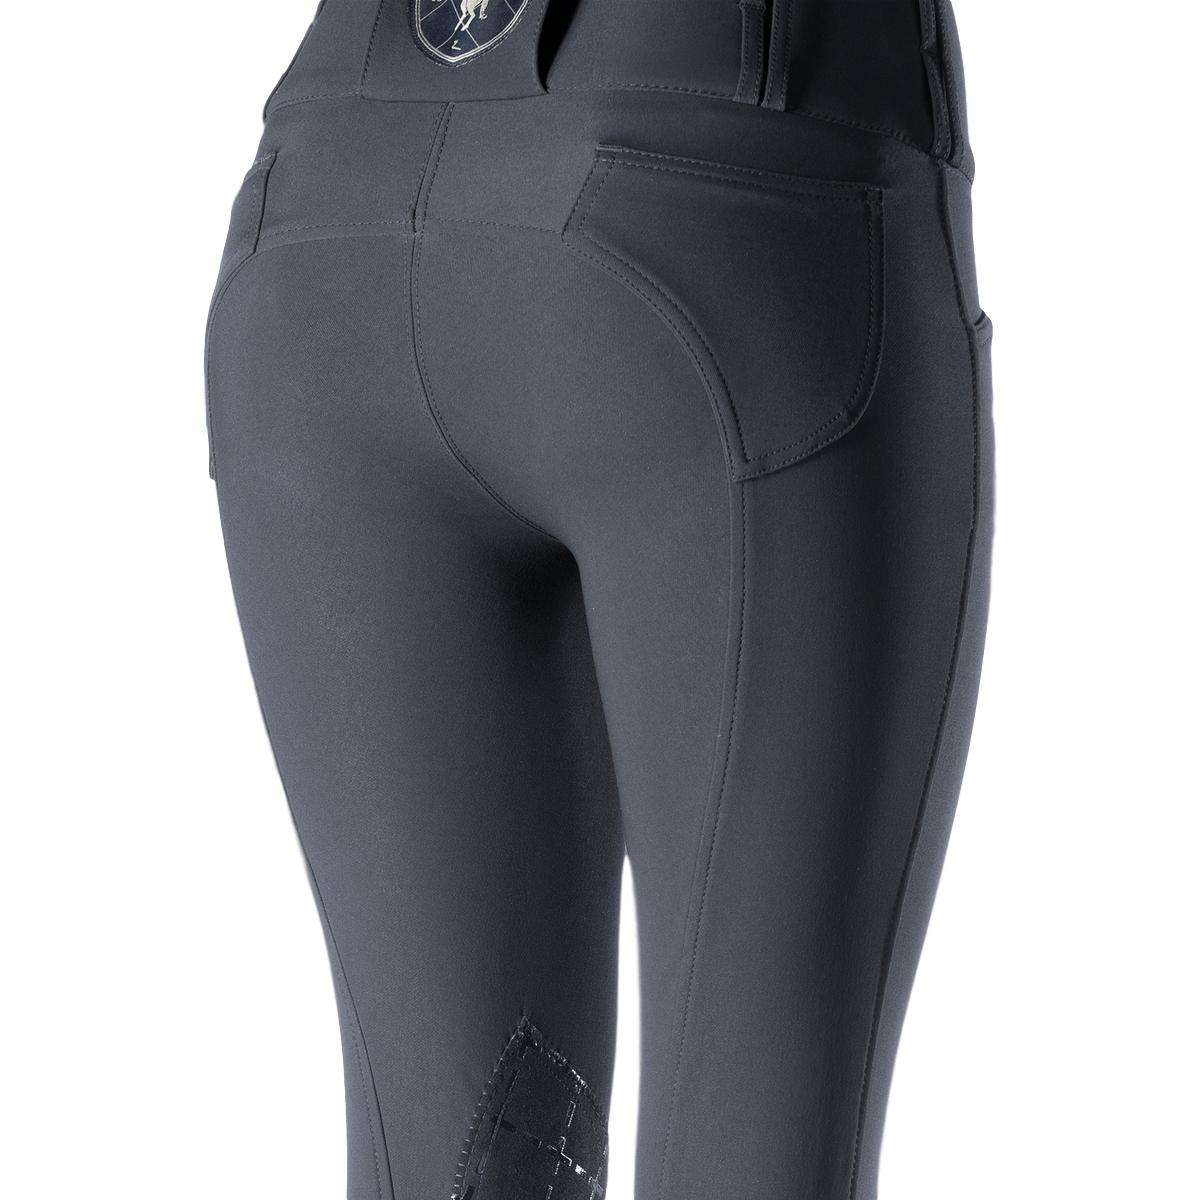 Horze-Desiree-Women-039-s-Knee-Patch-Riding-Breeches-with-High-Waist-and-Bi-Stretch thumbnail 18